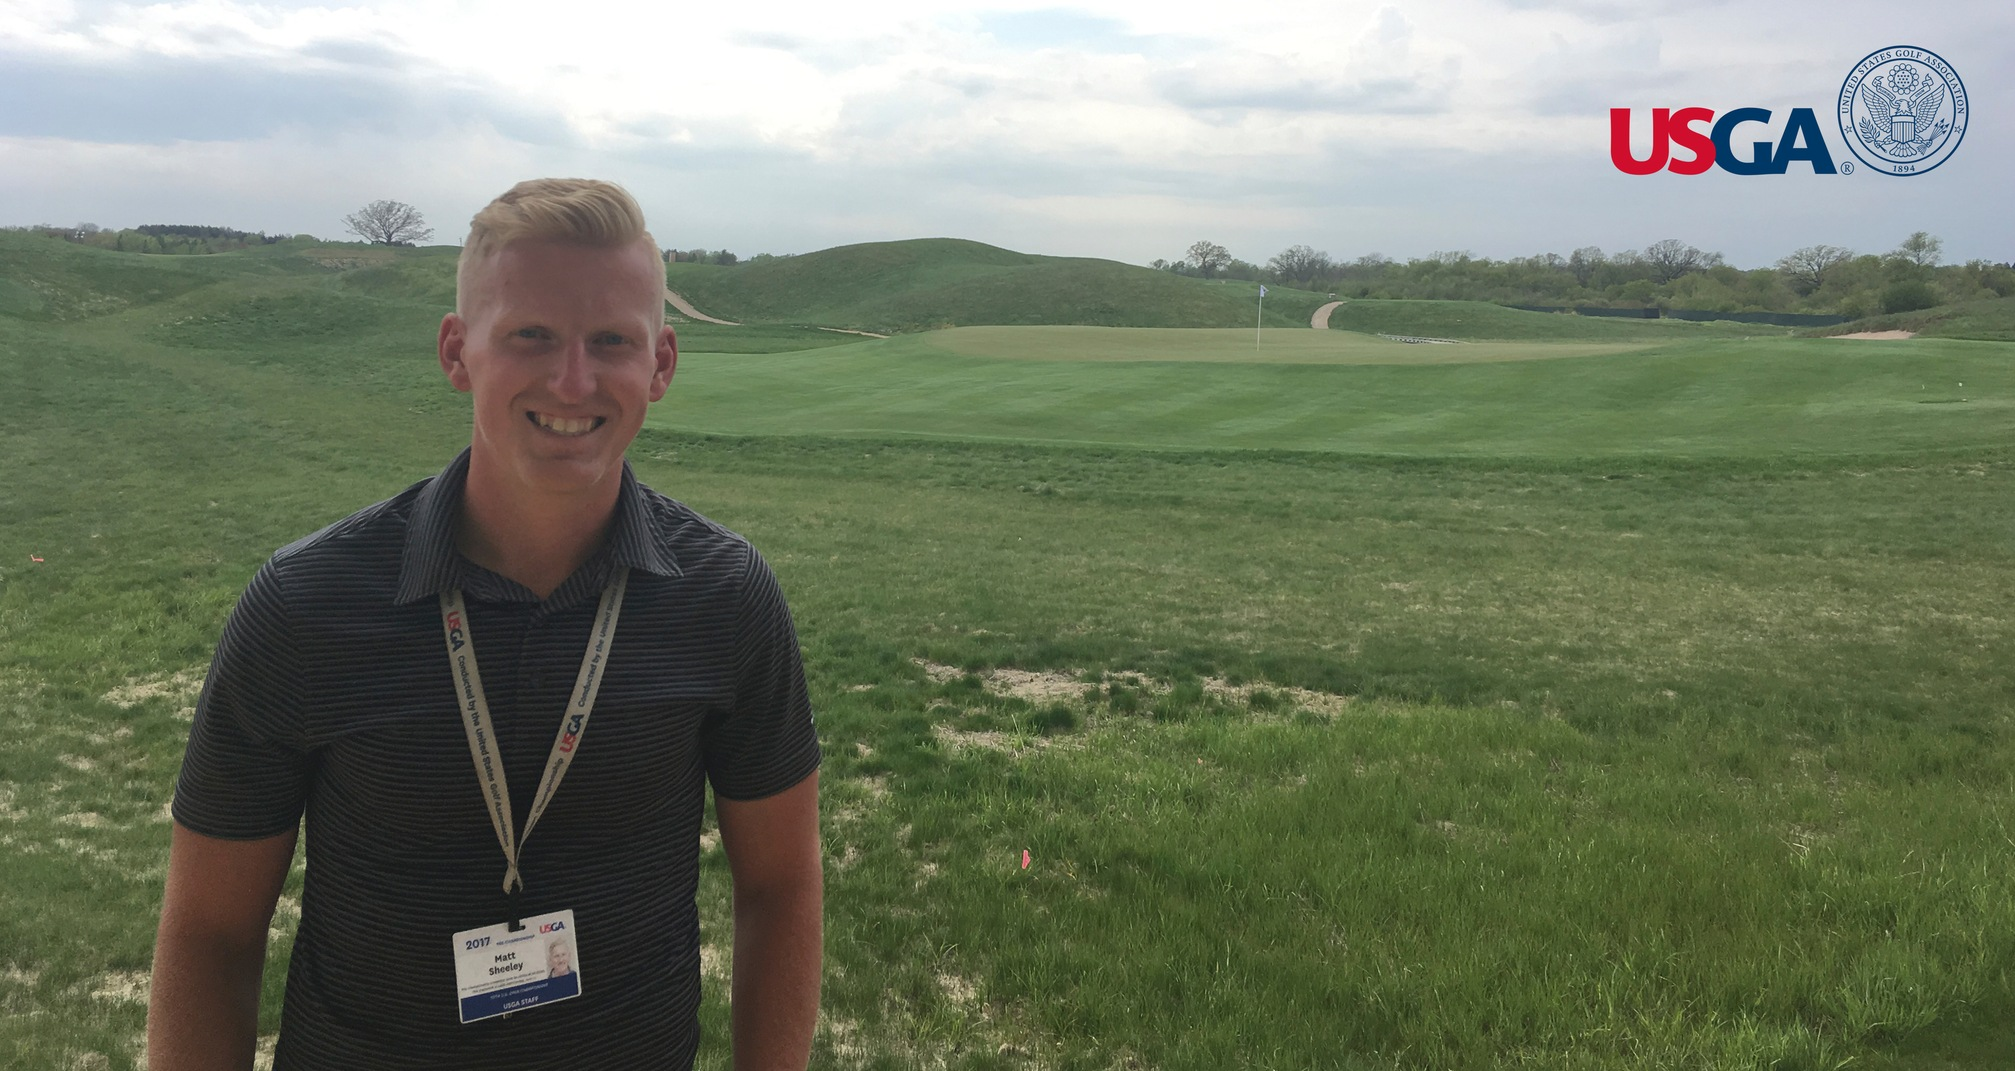 Sheeley (pictured) in front of the 13th green at Erin Hills, site of the 117th U.S. Open Championship.